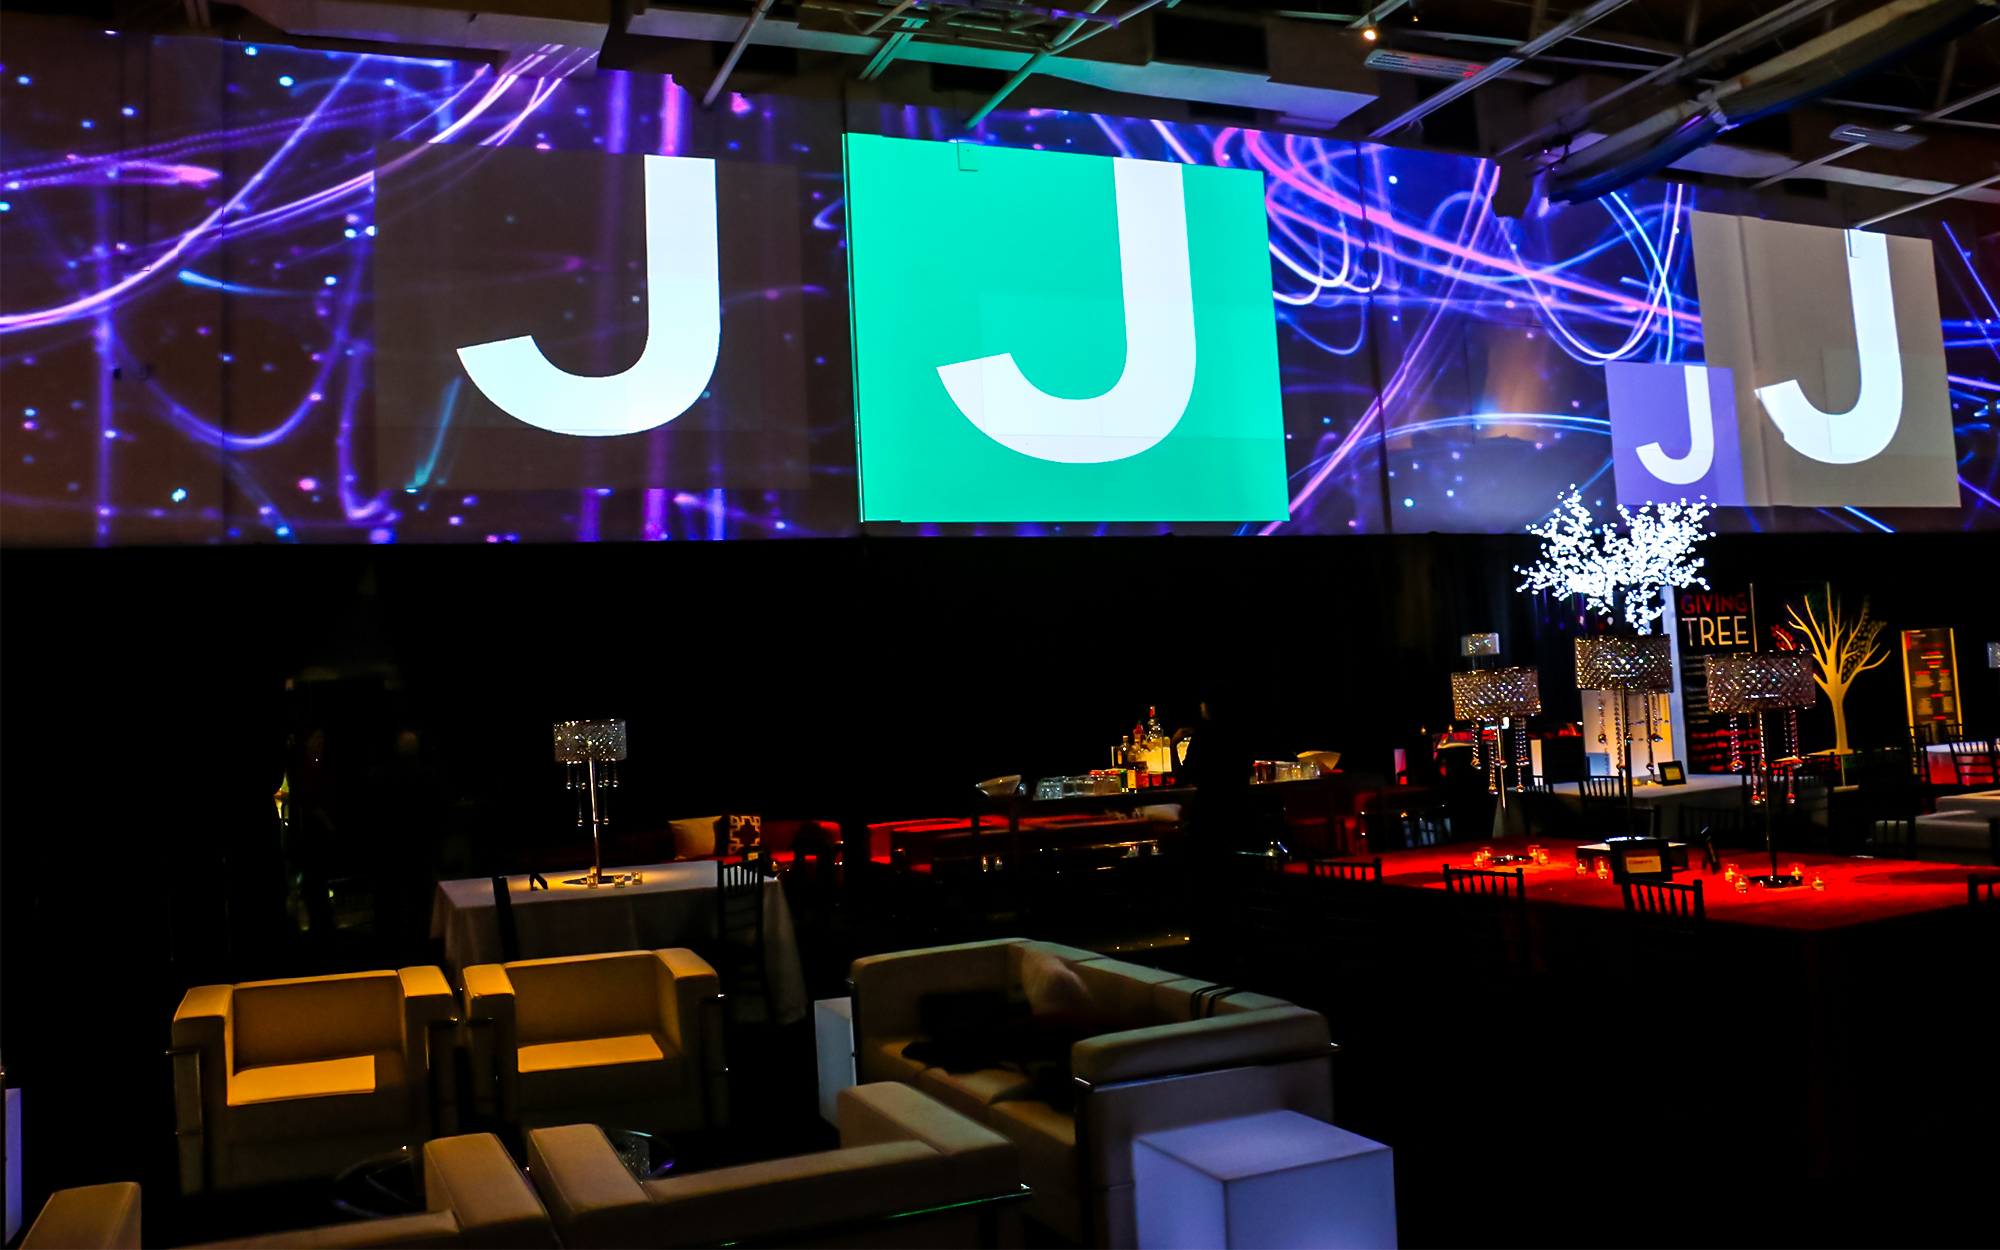 A 120' projection of the JCC logo